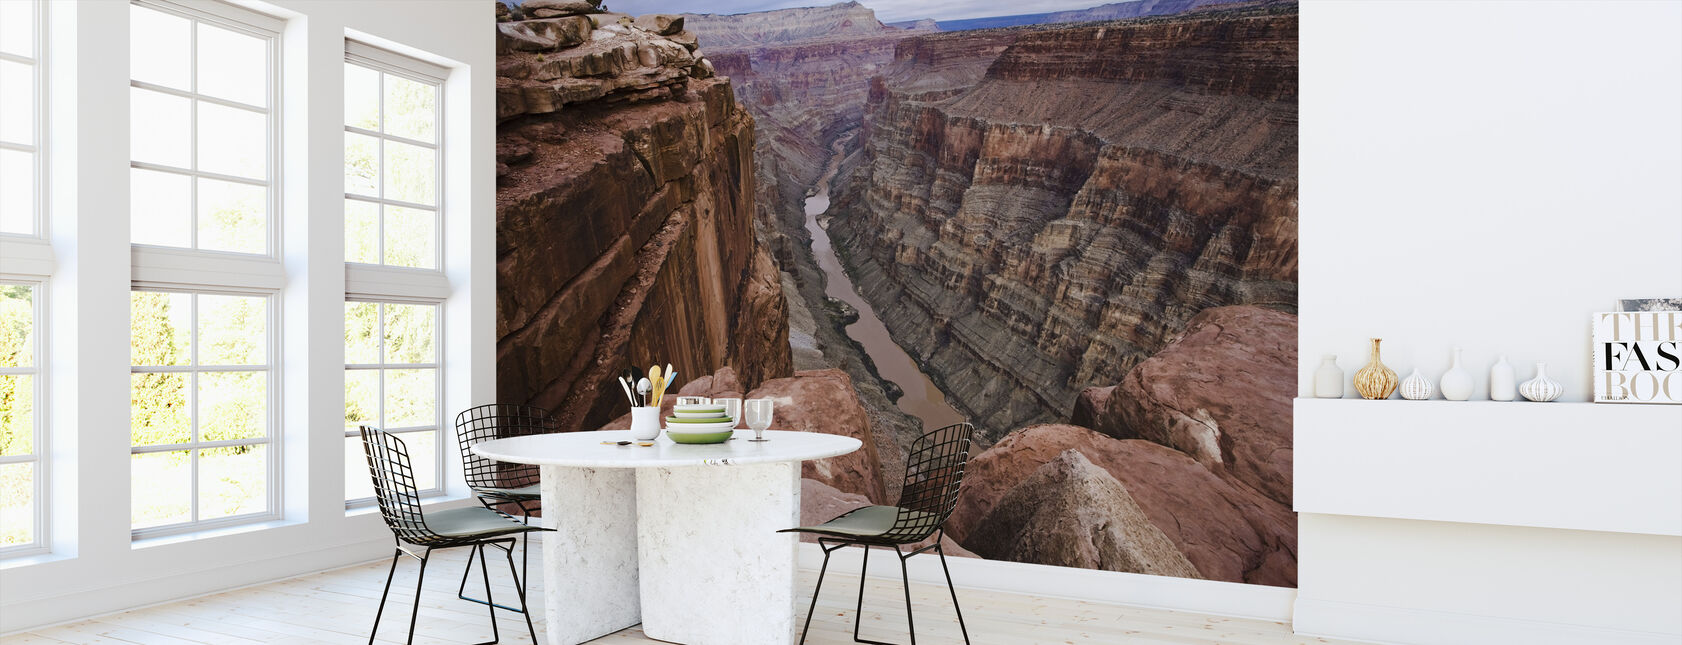 High above the Colorado River - Wallpaper - Kitchen